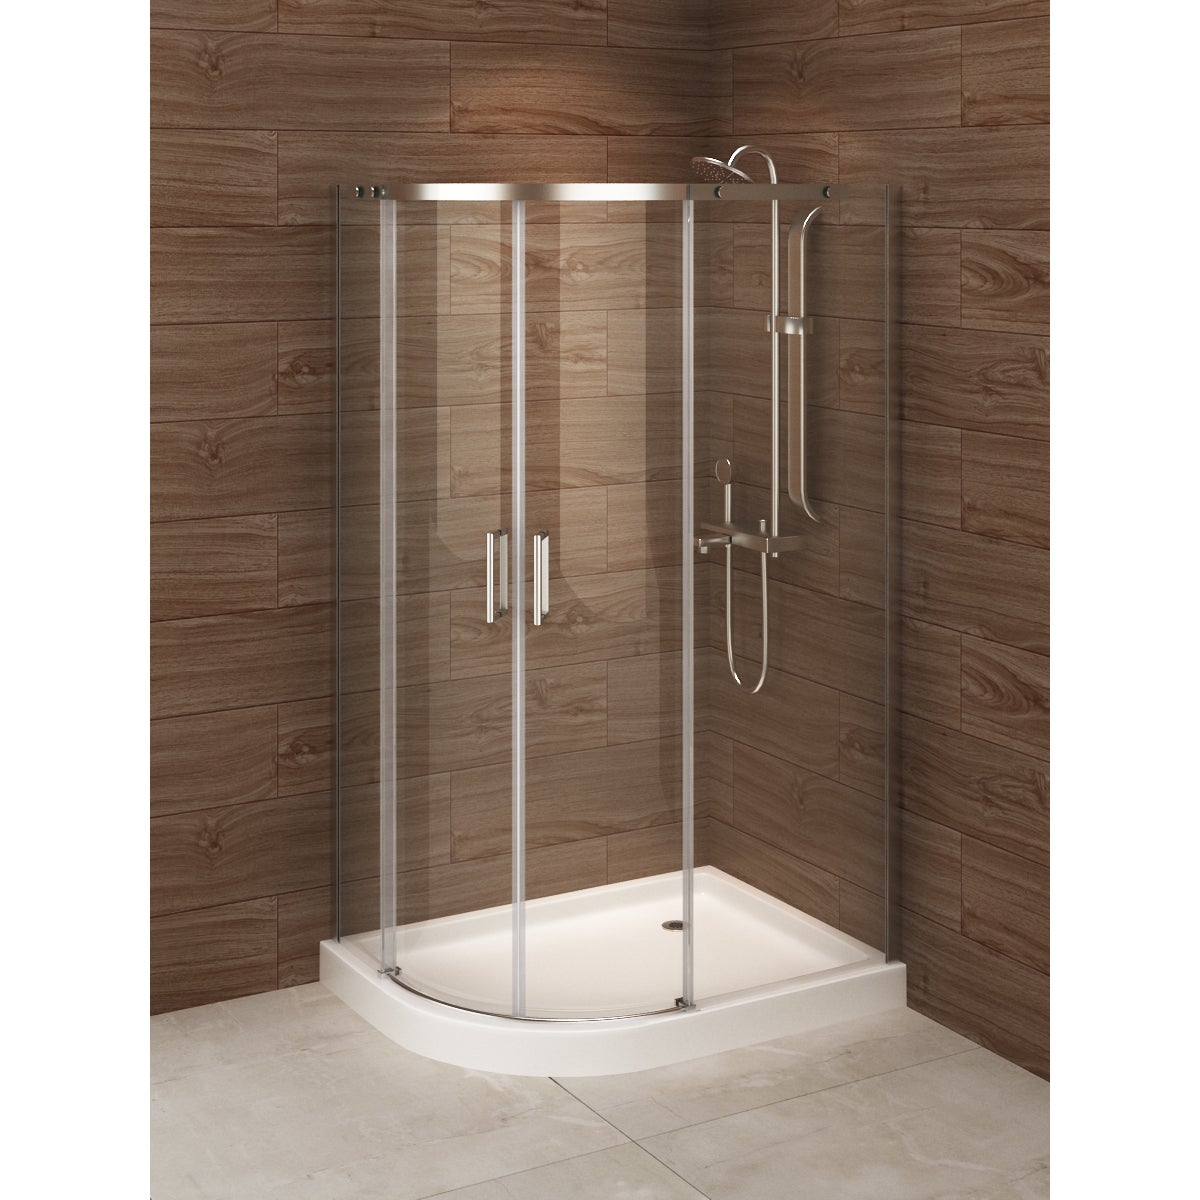 Shop Madrid 48-inch x 36-inch Left-opening Asymmetric Corner Shower ...